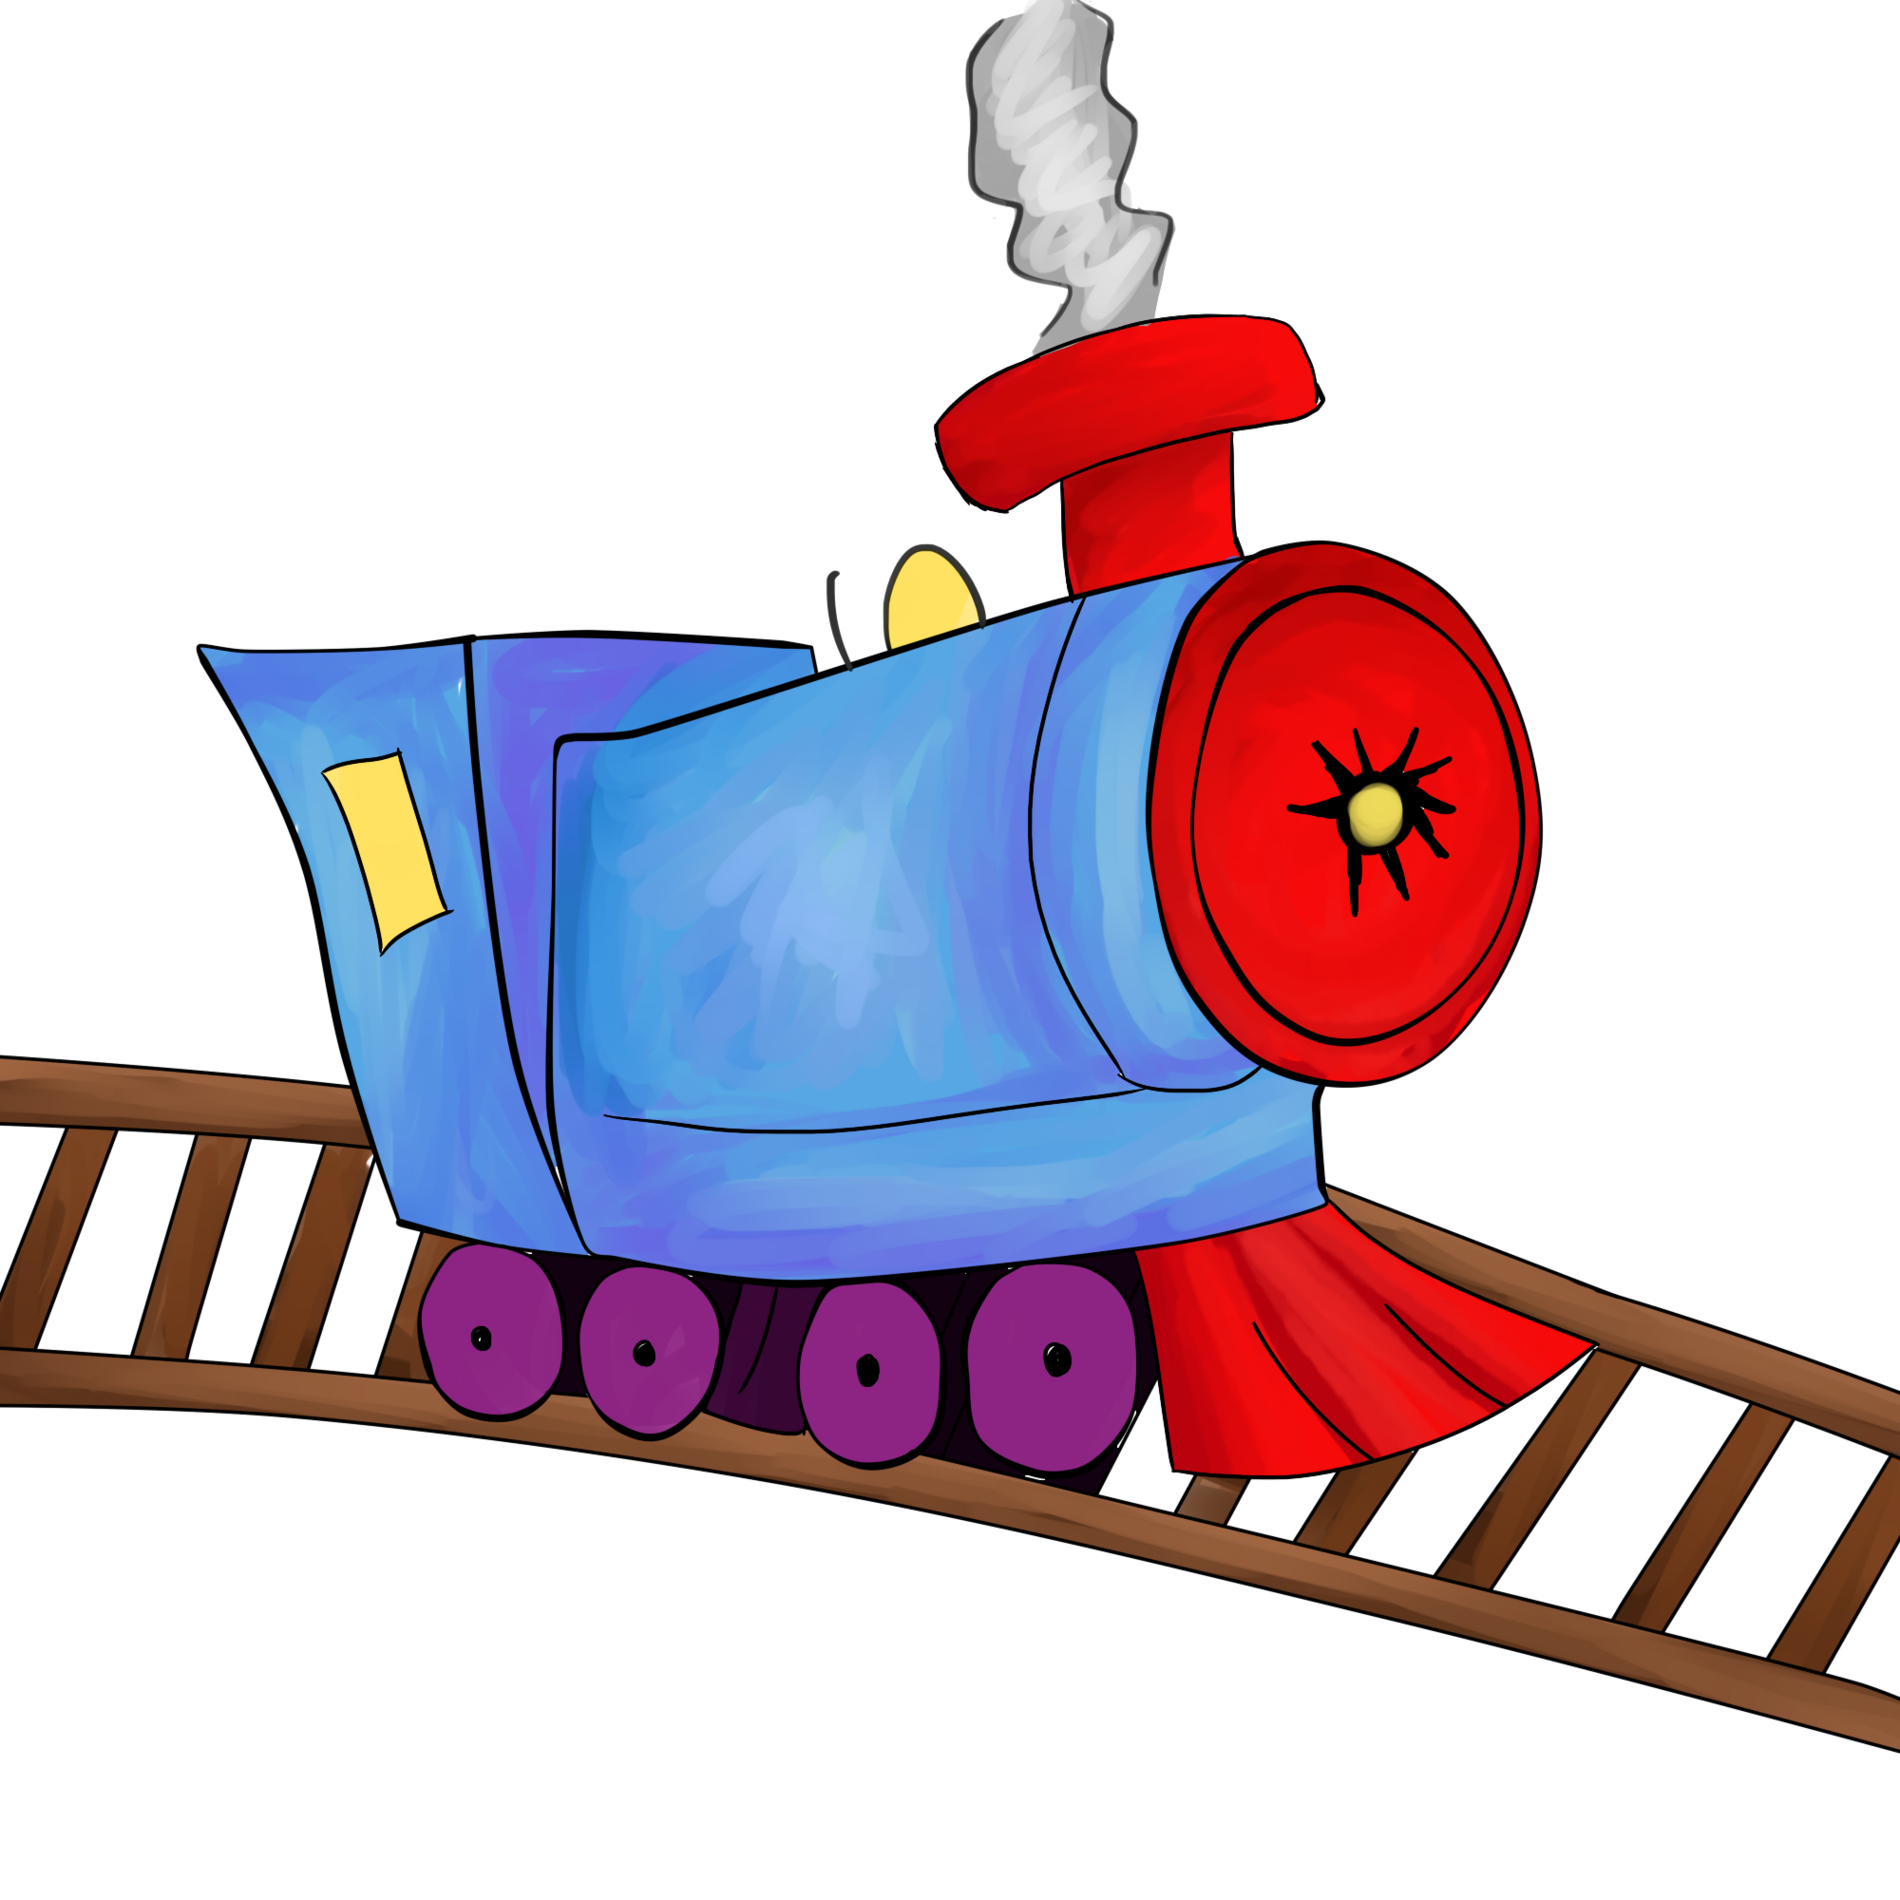 Train Track Clipart | Free download best Train Track Clipart on ... clipart